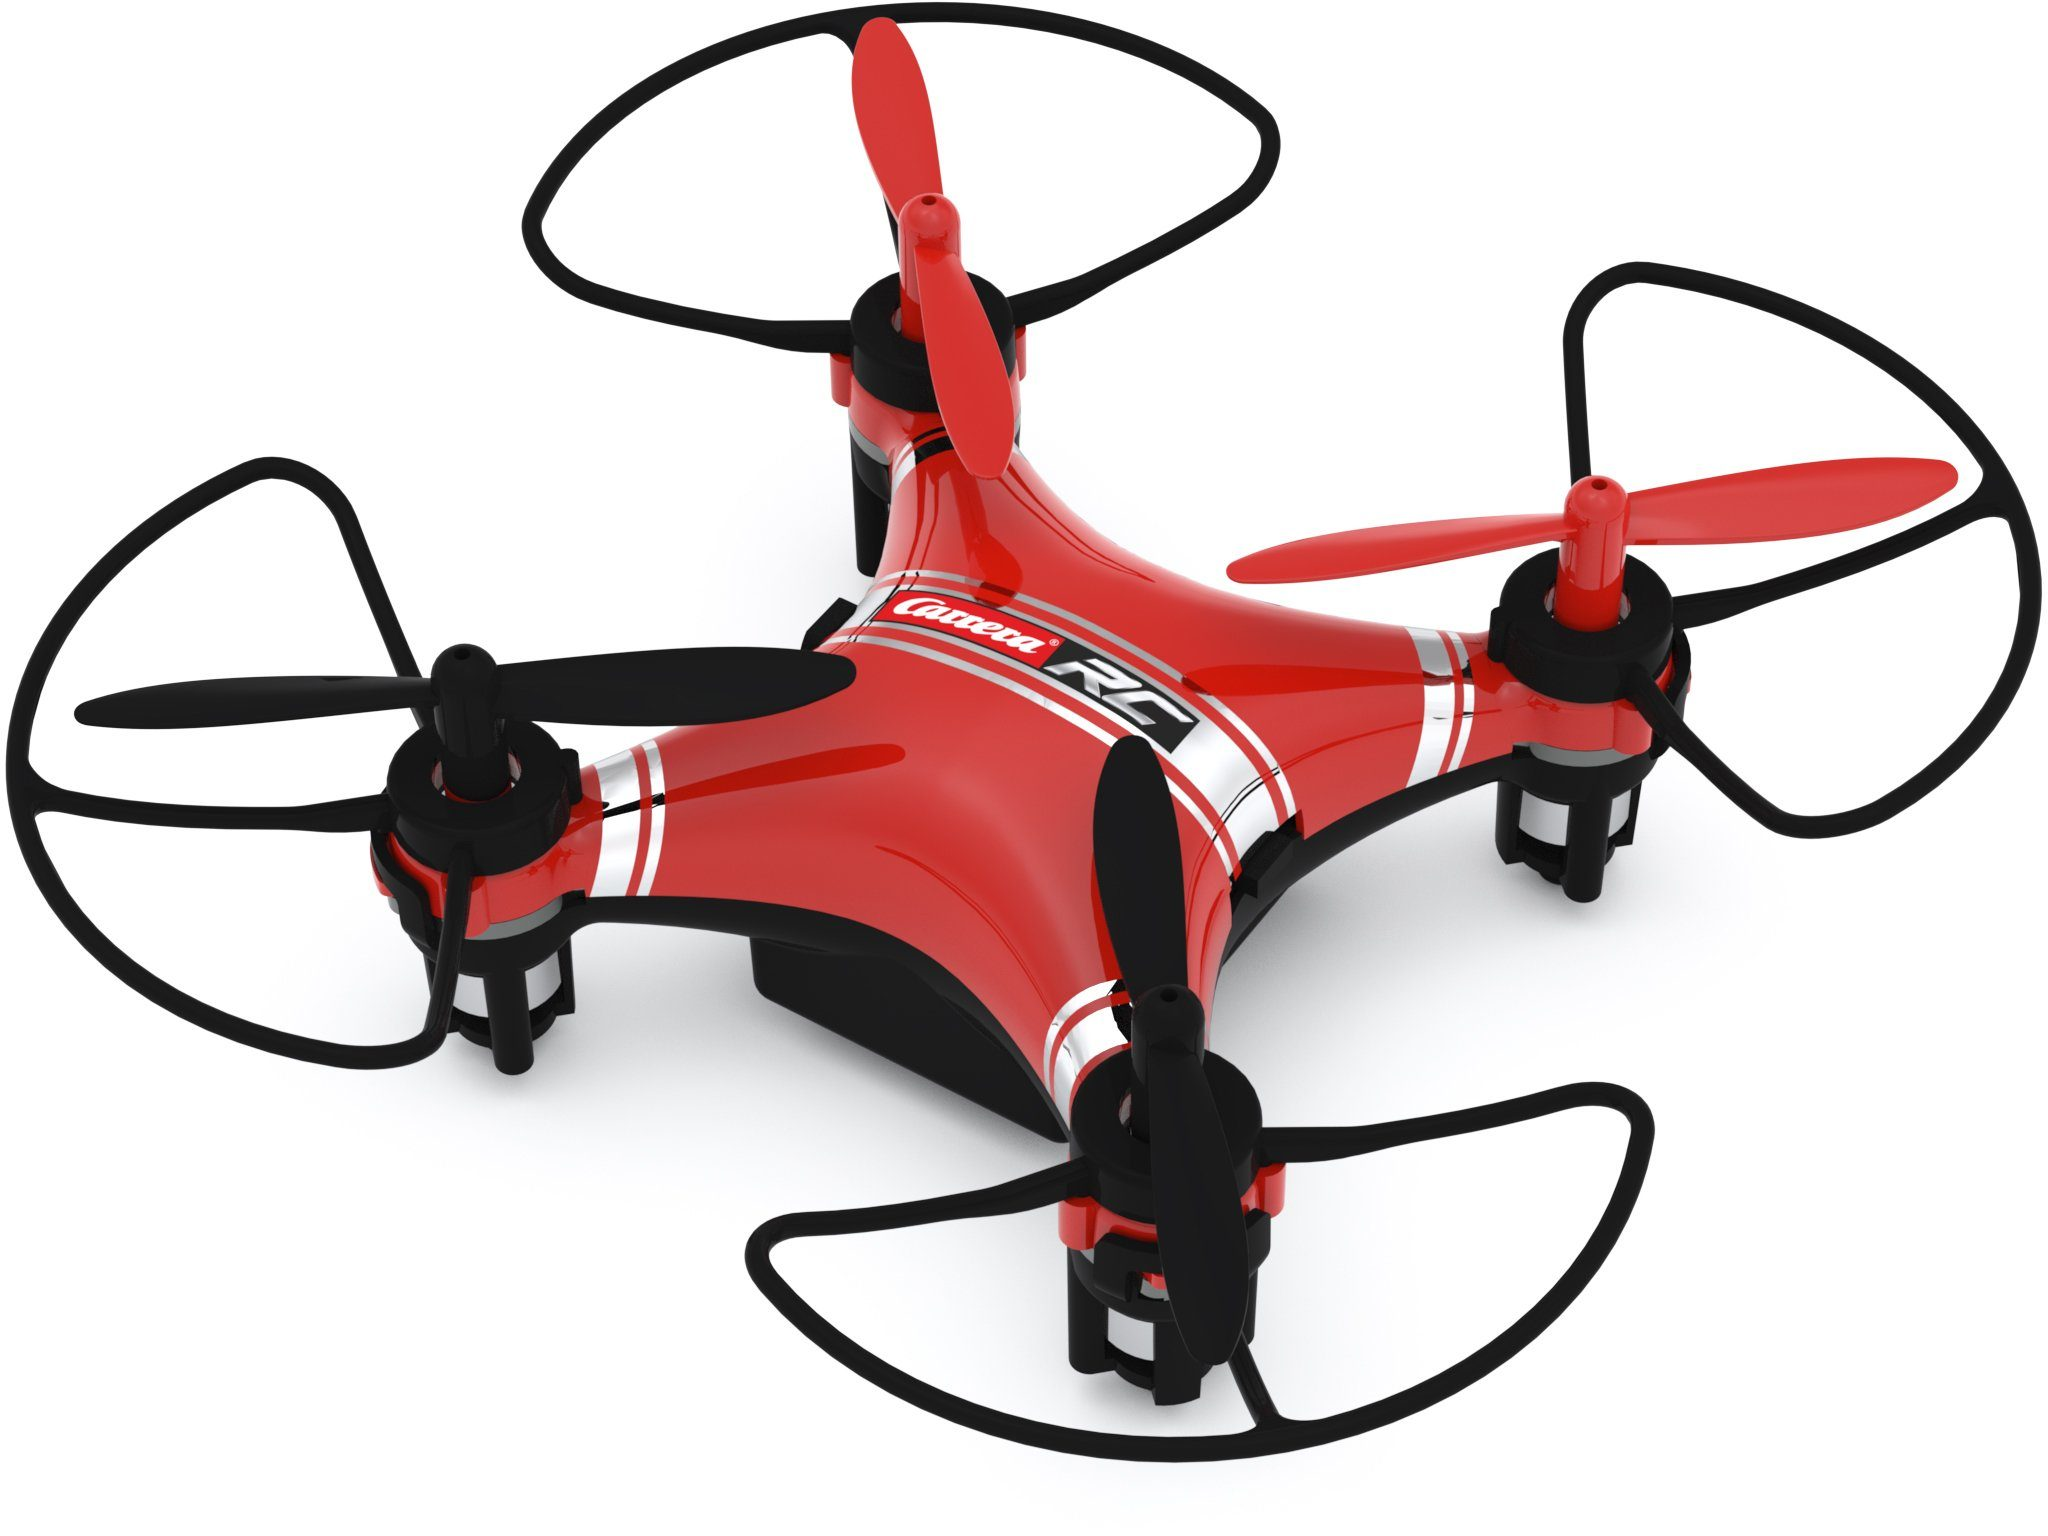 Carrera® RC Quadrocopter Komplett Set mit LED Beleuchtung, »Carrera®RC Air Micro Quadrocopter 2«